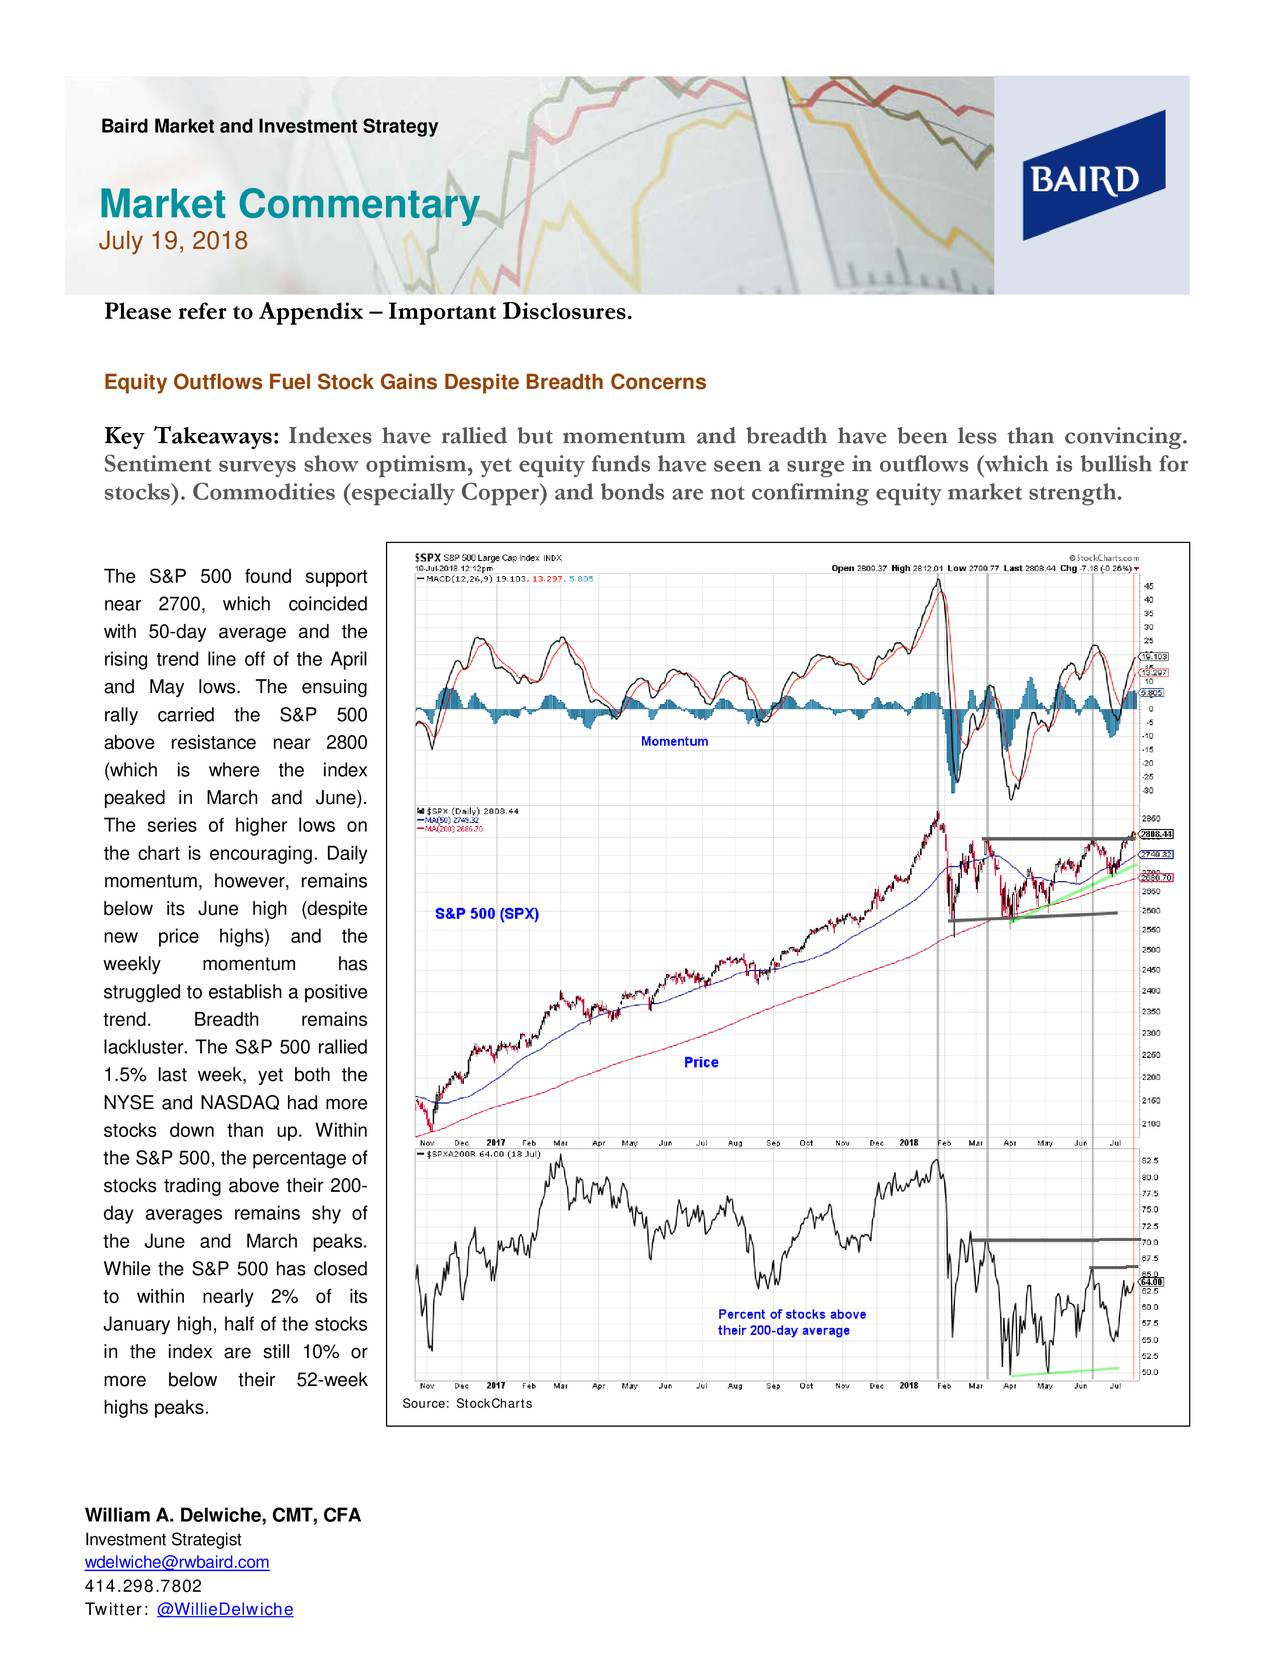 Market Commentary July 19, 2018 Please refer to Appendix – Important Disclosures. Equity Outflows Fuel Stock Gains Despite Breadth Concerns Key Takeaways: Indexes have rallied but momentum and breadth have been less than convincing. Sentiment surveys show optimism, yet equity funds have seen a surge in outflows (which is bullish for stocks). Commodities (especially Copper) and bonds are not confirming equitymarket strength. The S&P 500 found support near 2700, which coincided with 50-day average and the rising trend line off of the April and May lows. The ensuing rally carried the S&P 500 above resistance near 2800 (which is where the index peaked in March and June). The series of higher lows on the chart is encouraging . Daily momentum, however, remains below its June high (despite new price highs) and the weekly momentum has struggled to establish a positive trend. Breadth remains lackluster. The S&P 500 rallied 1.5% last week, yet both the NYSE and NASDAQ had more stocks down than up. Within the S&P 500, the percentage of stocks trading above their 200- day averages remains shy of the June and March peaks. While the S&P 500 has closed to within nearly 2% of its January high, half of the stocks in the index are still 10% or more below their 52-week Source: StockCharts highs peaks. William A. Delwiche, CMT, CFA Investment Strategist wdelwiche@rwbaird.com 414.298.7802 Twitter: @WillieDelwiche